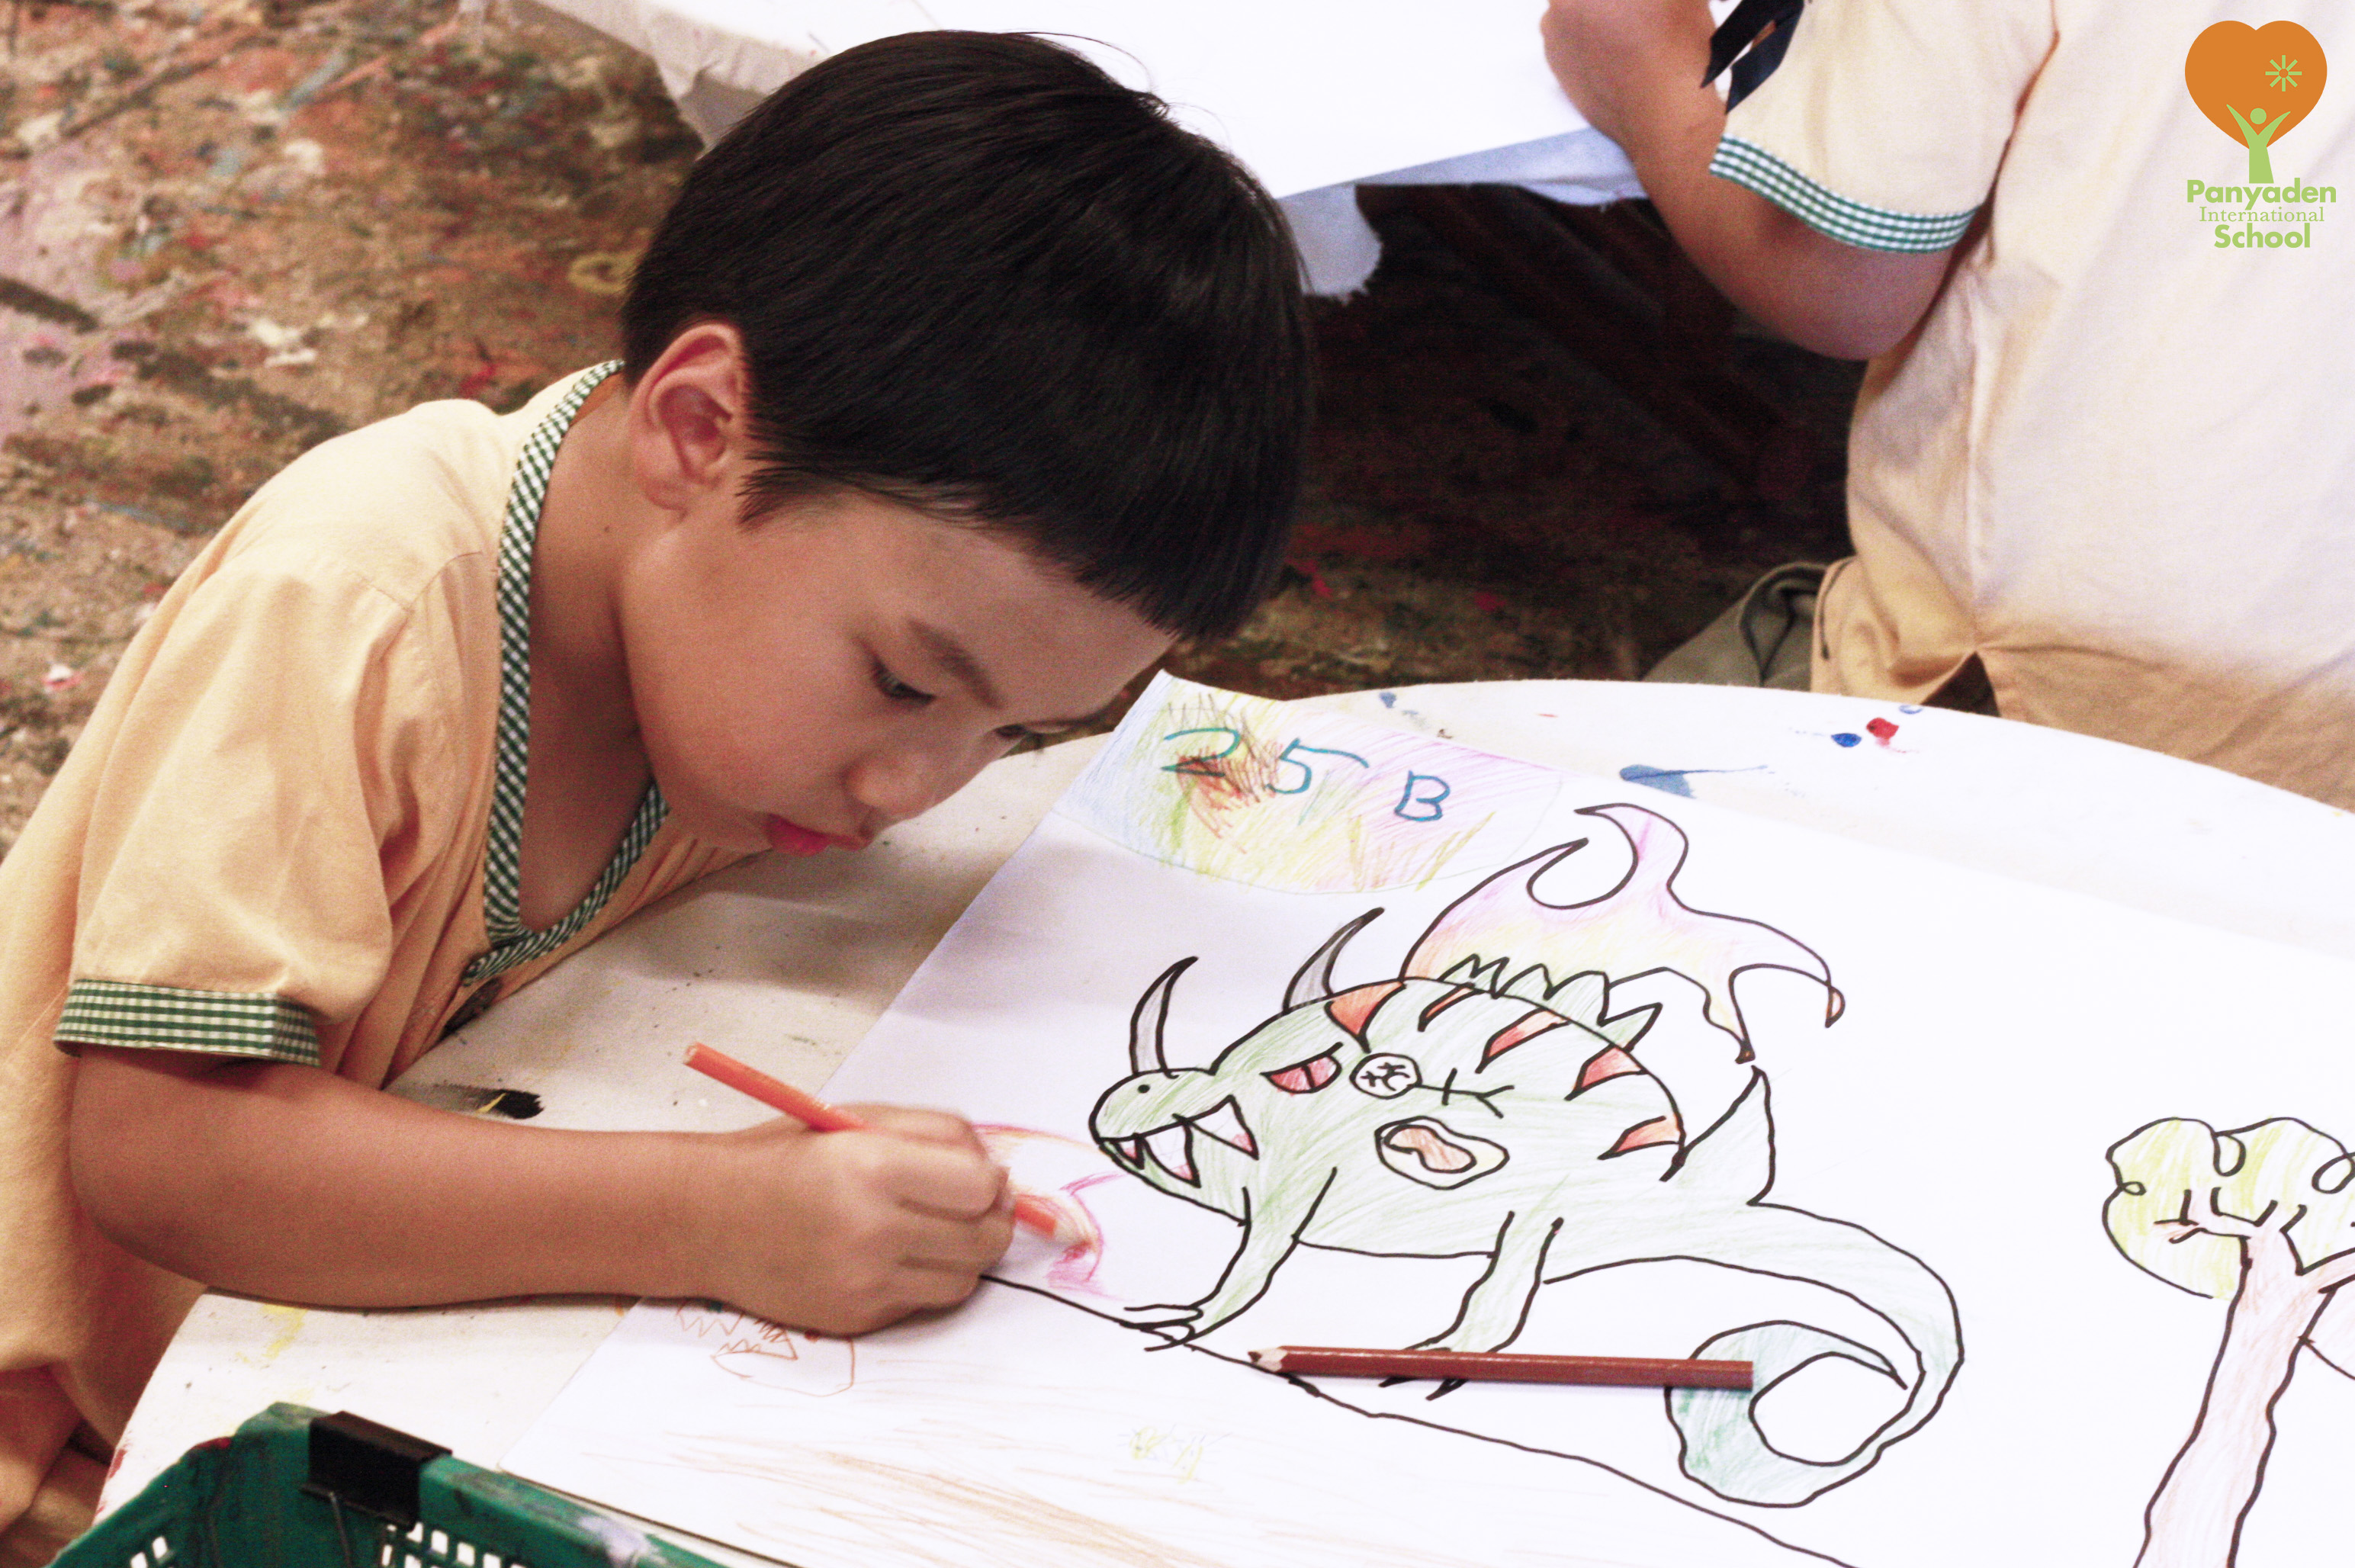 Drawing a lizard, Panyaden Year 1 student